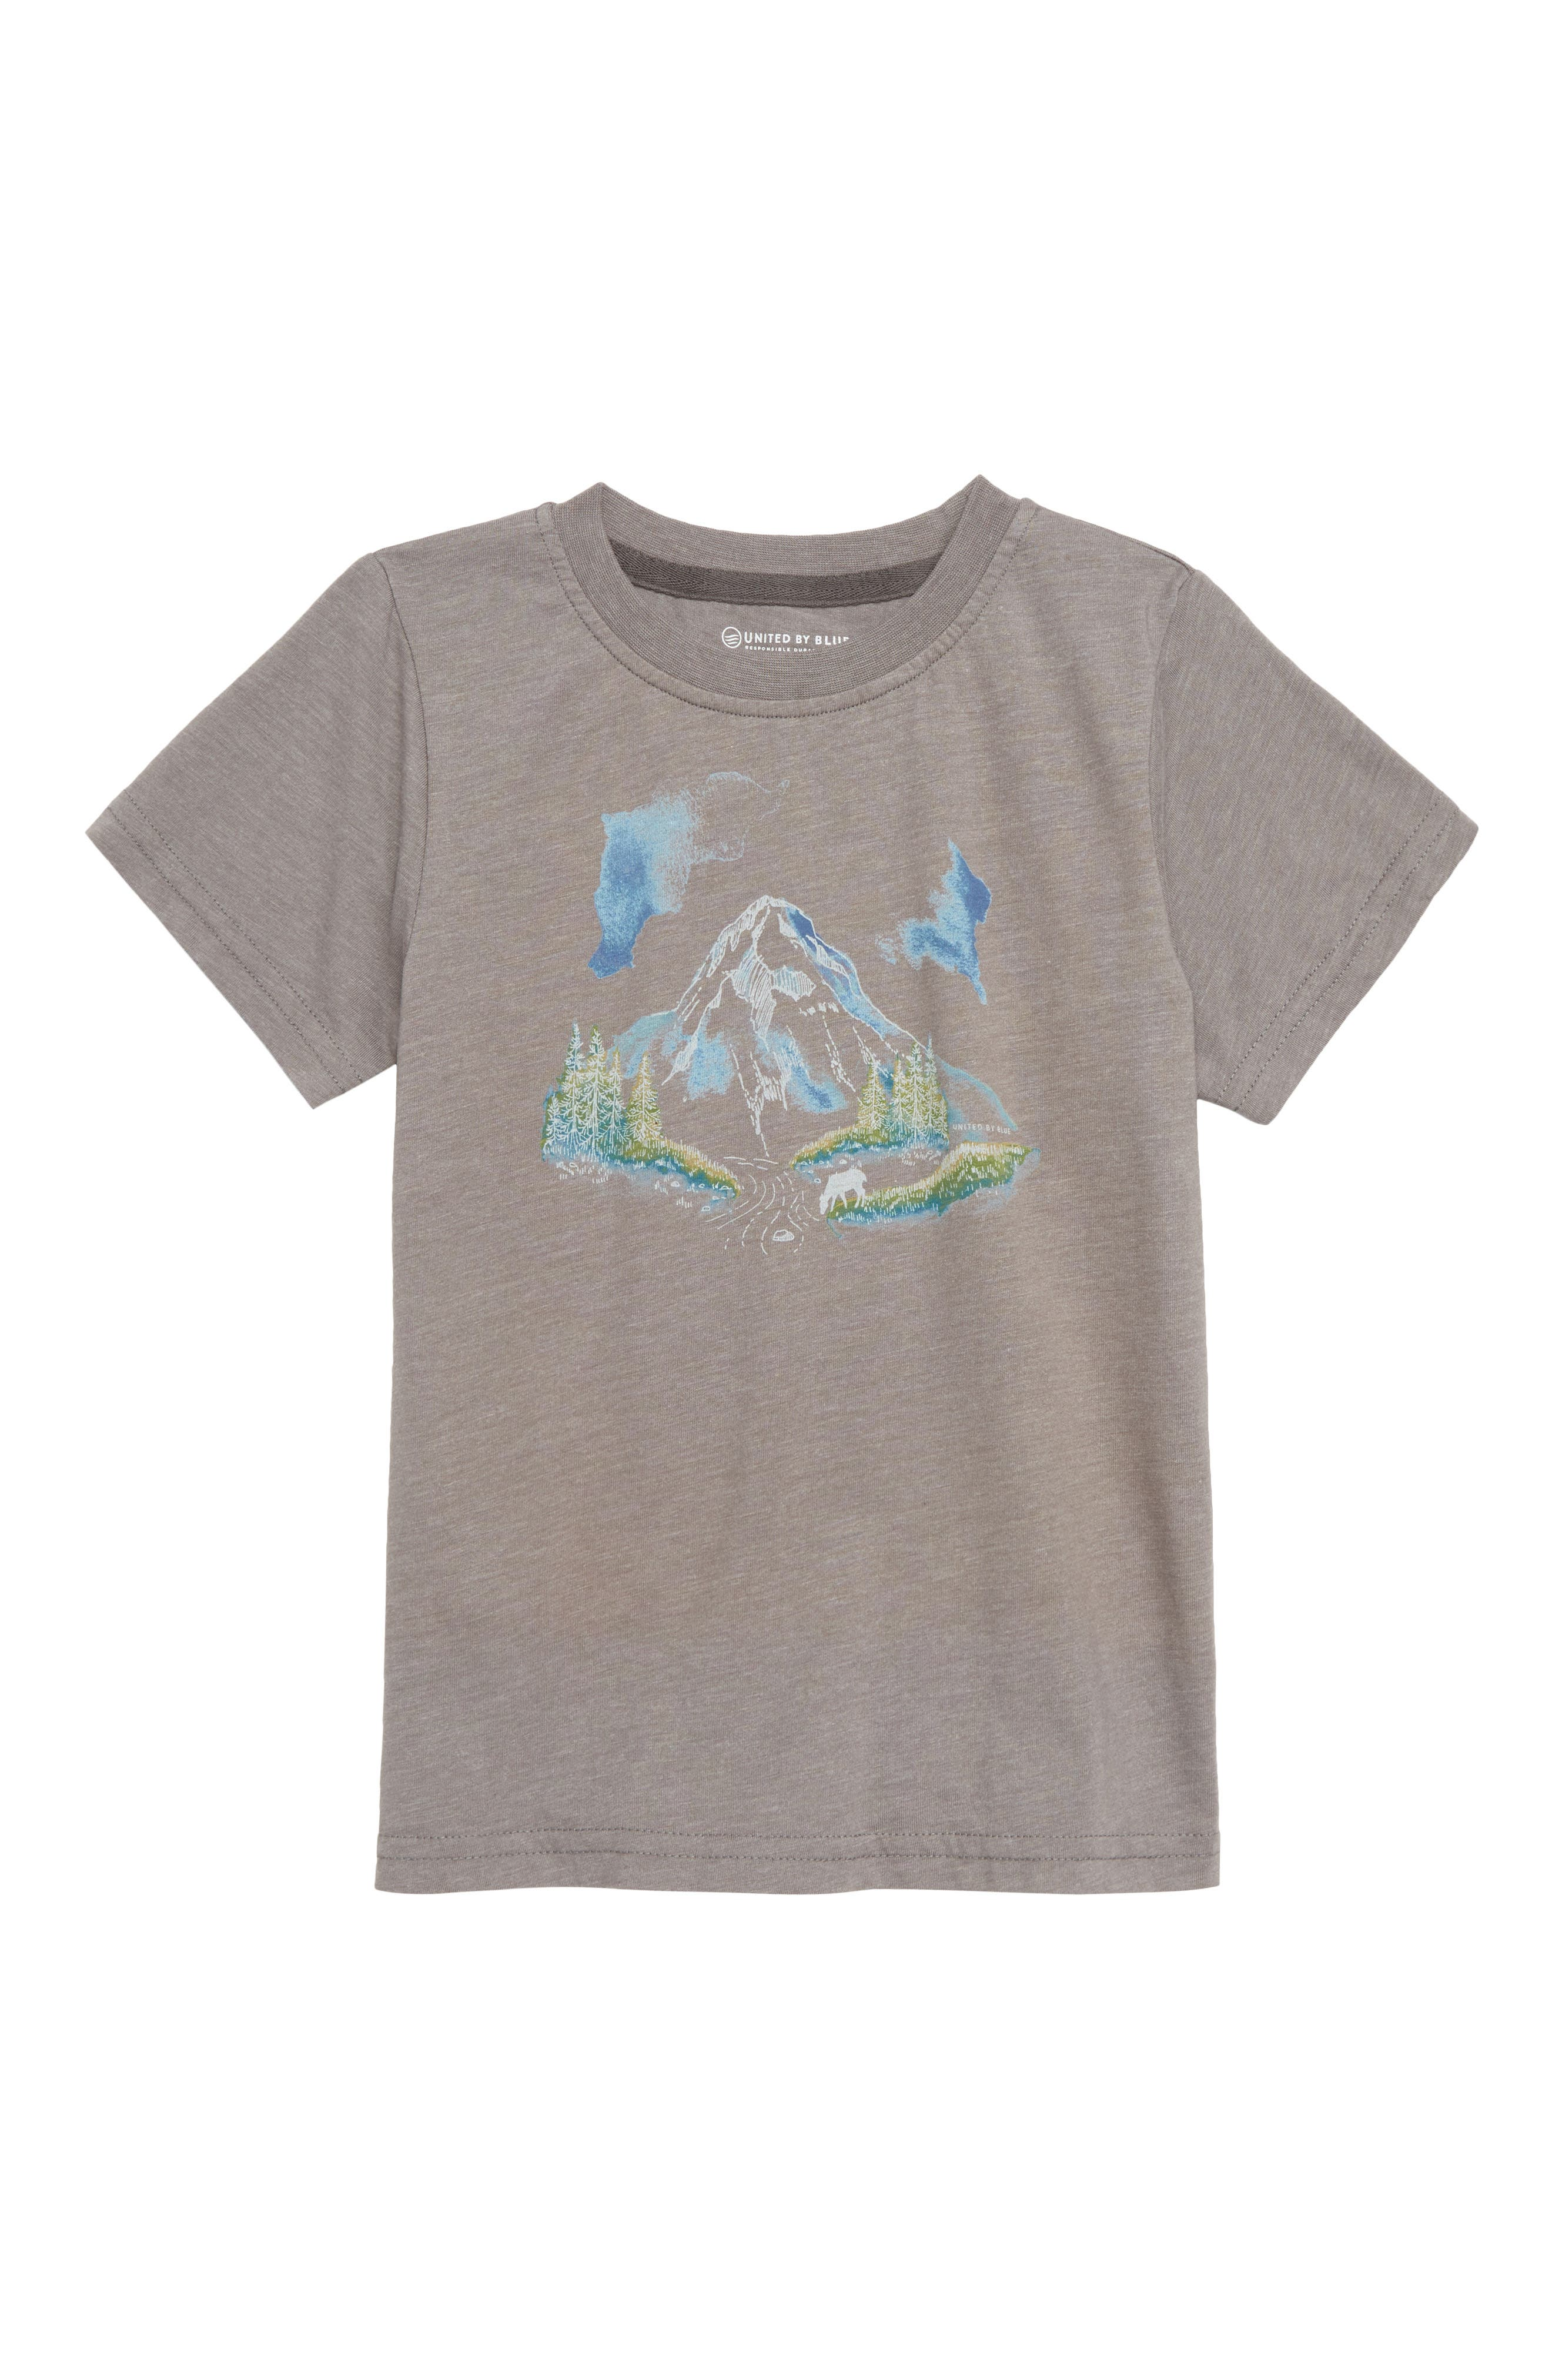 River Mountain T-Shirt,                         Main,                         color, STEEL GREY